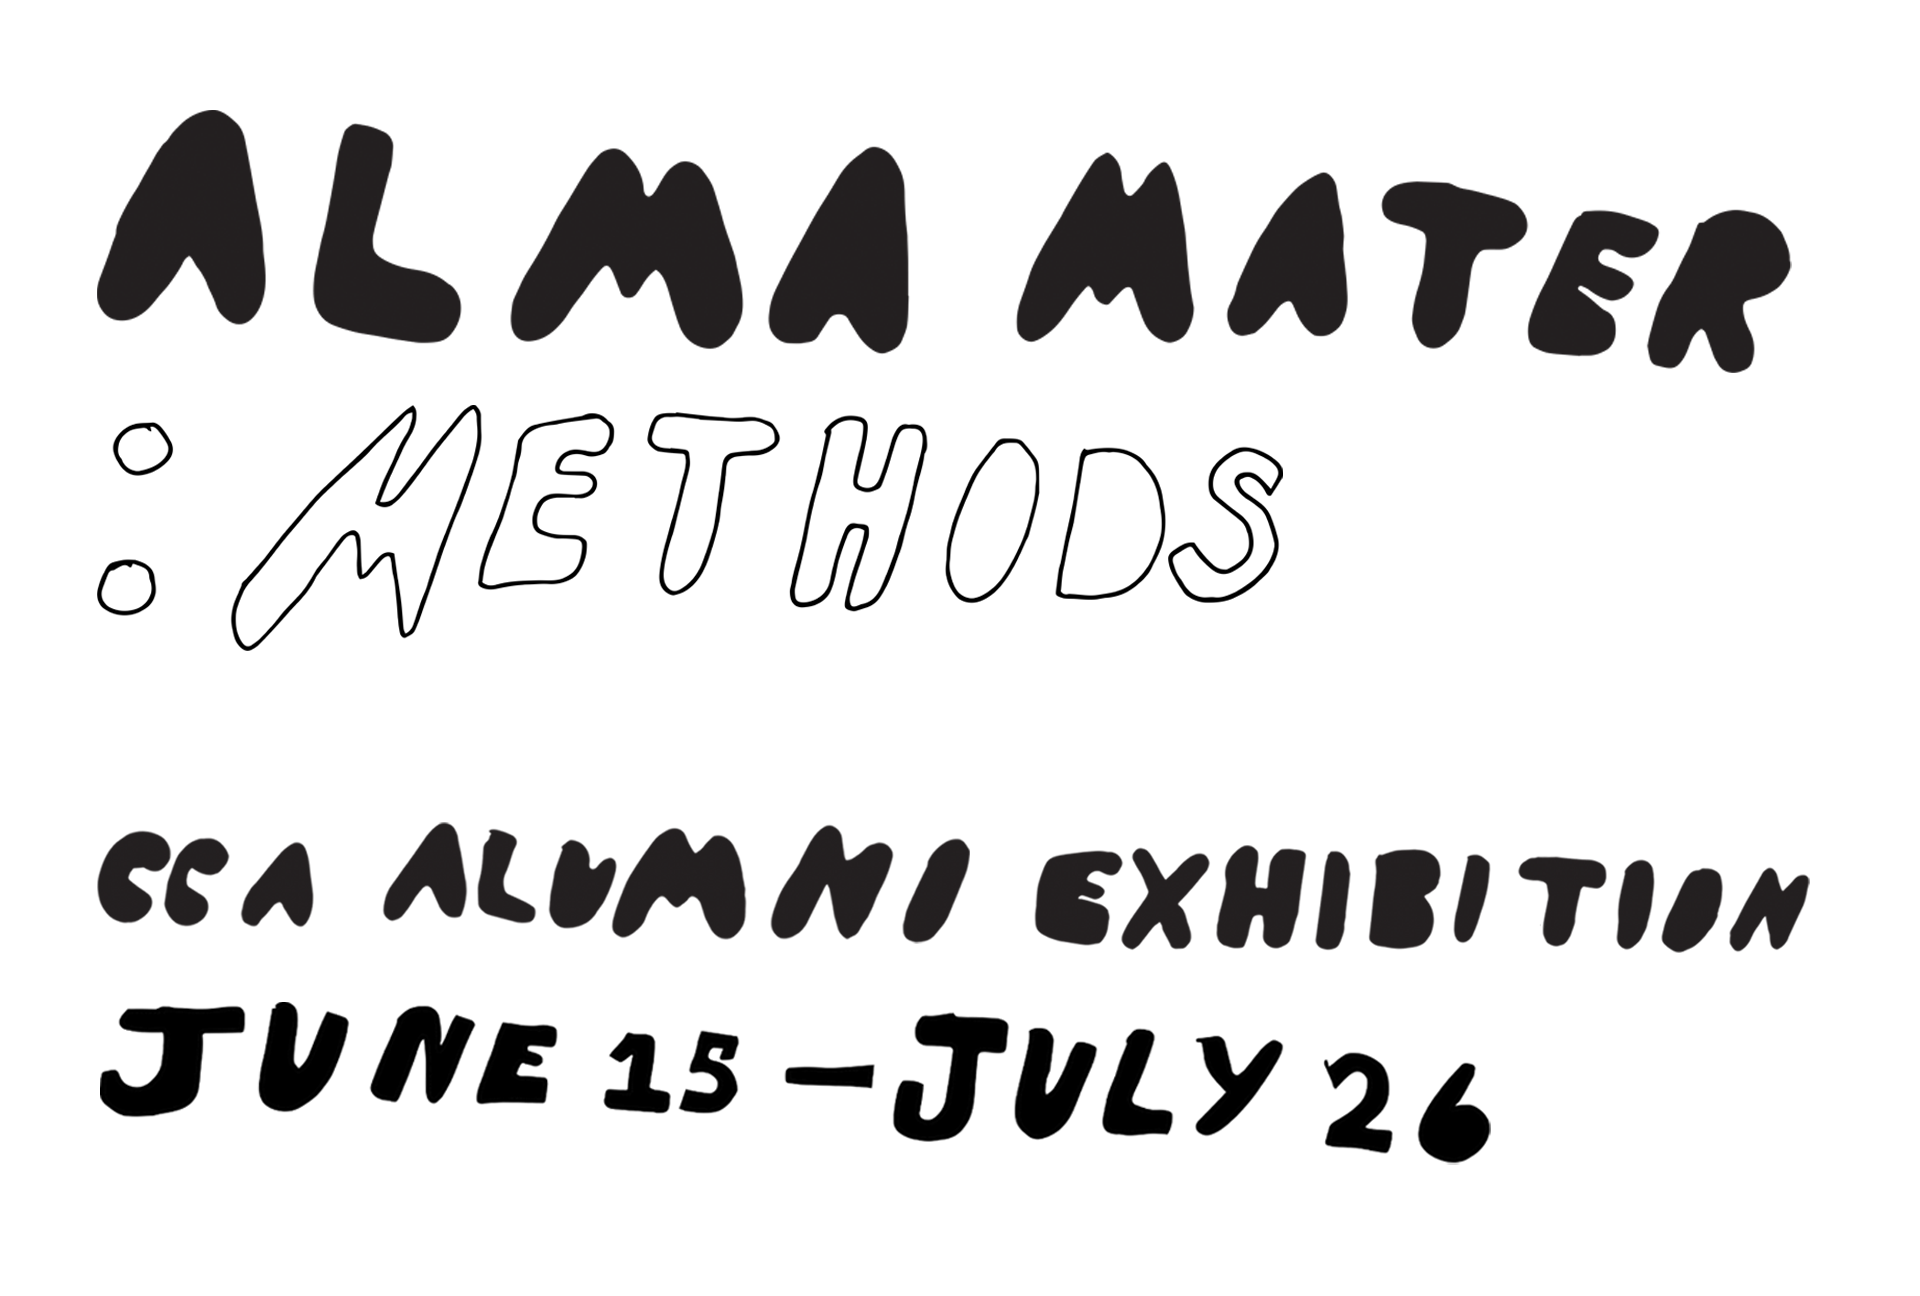 2019 Alma Mater Event Listings final.png